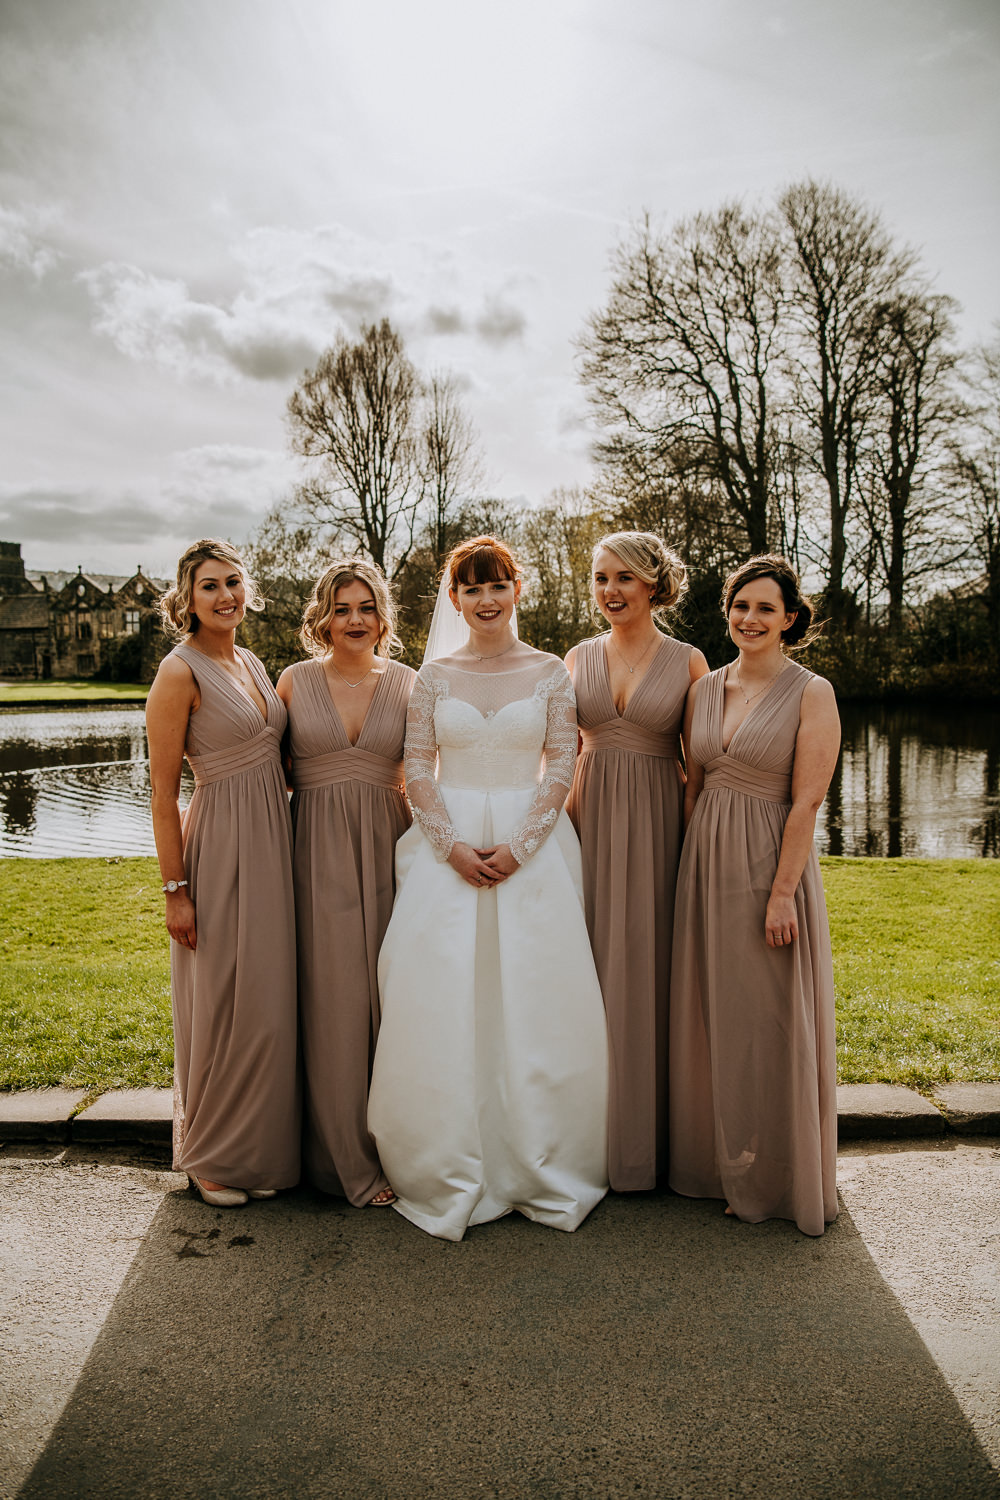 Bride Bridal Full Skirt Lace Long Sleeve Dress Gown V Neck Grecian Blush Bridesmaids Veil East Riddlesden Hall Wedding M and G Photographic